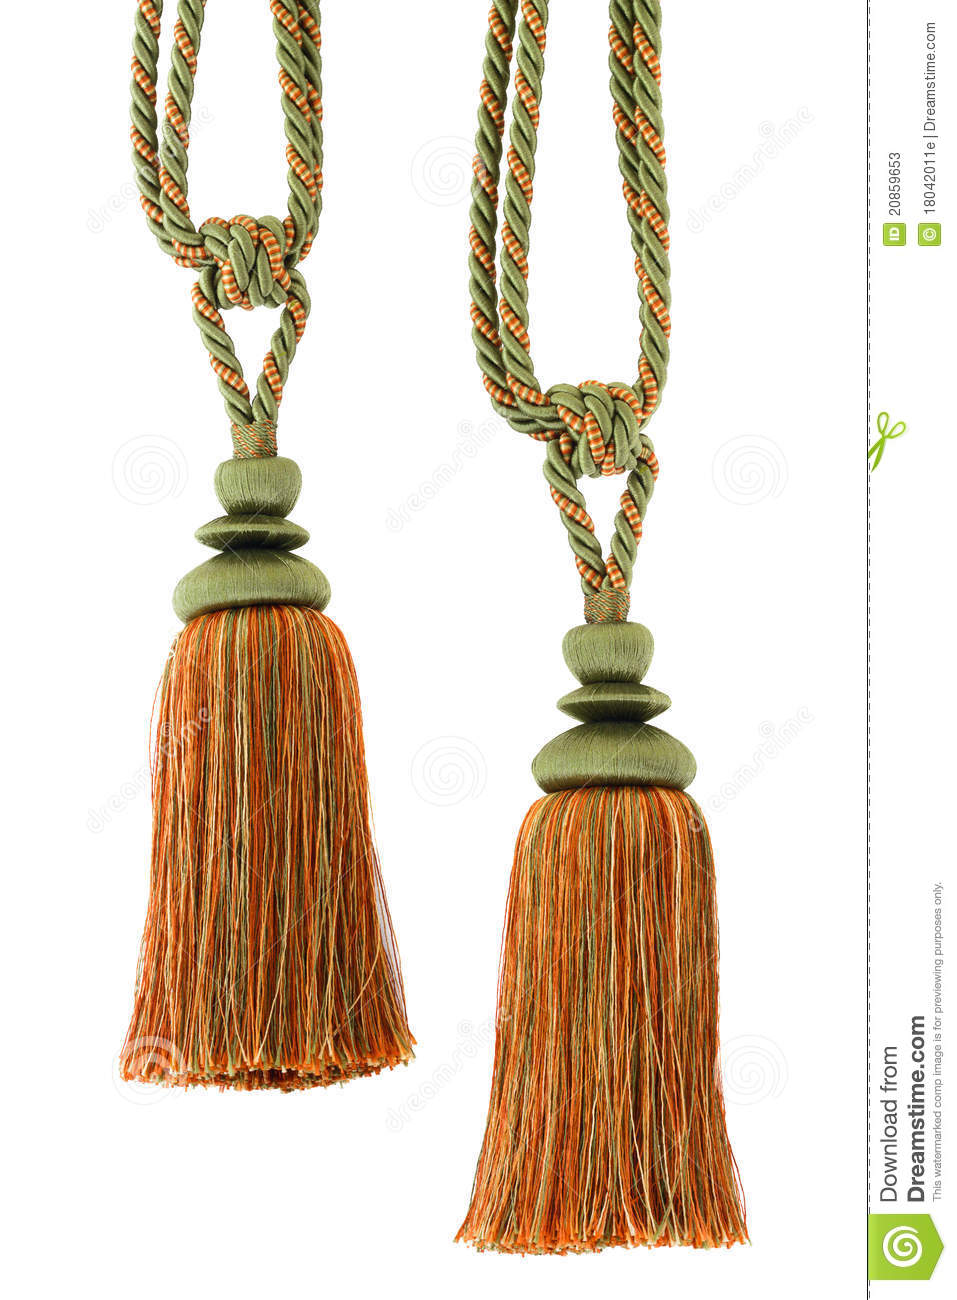 More similar stock images of ` Two Curtain cord, tassels, isoated `